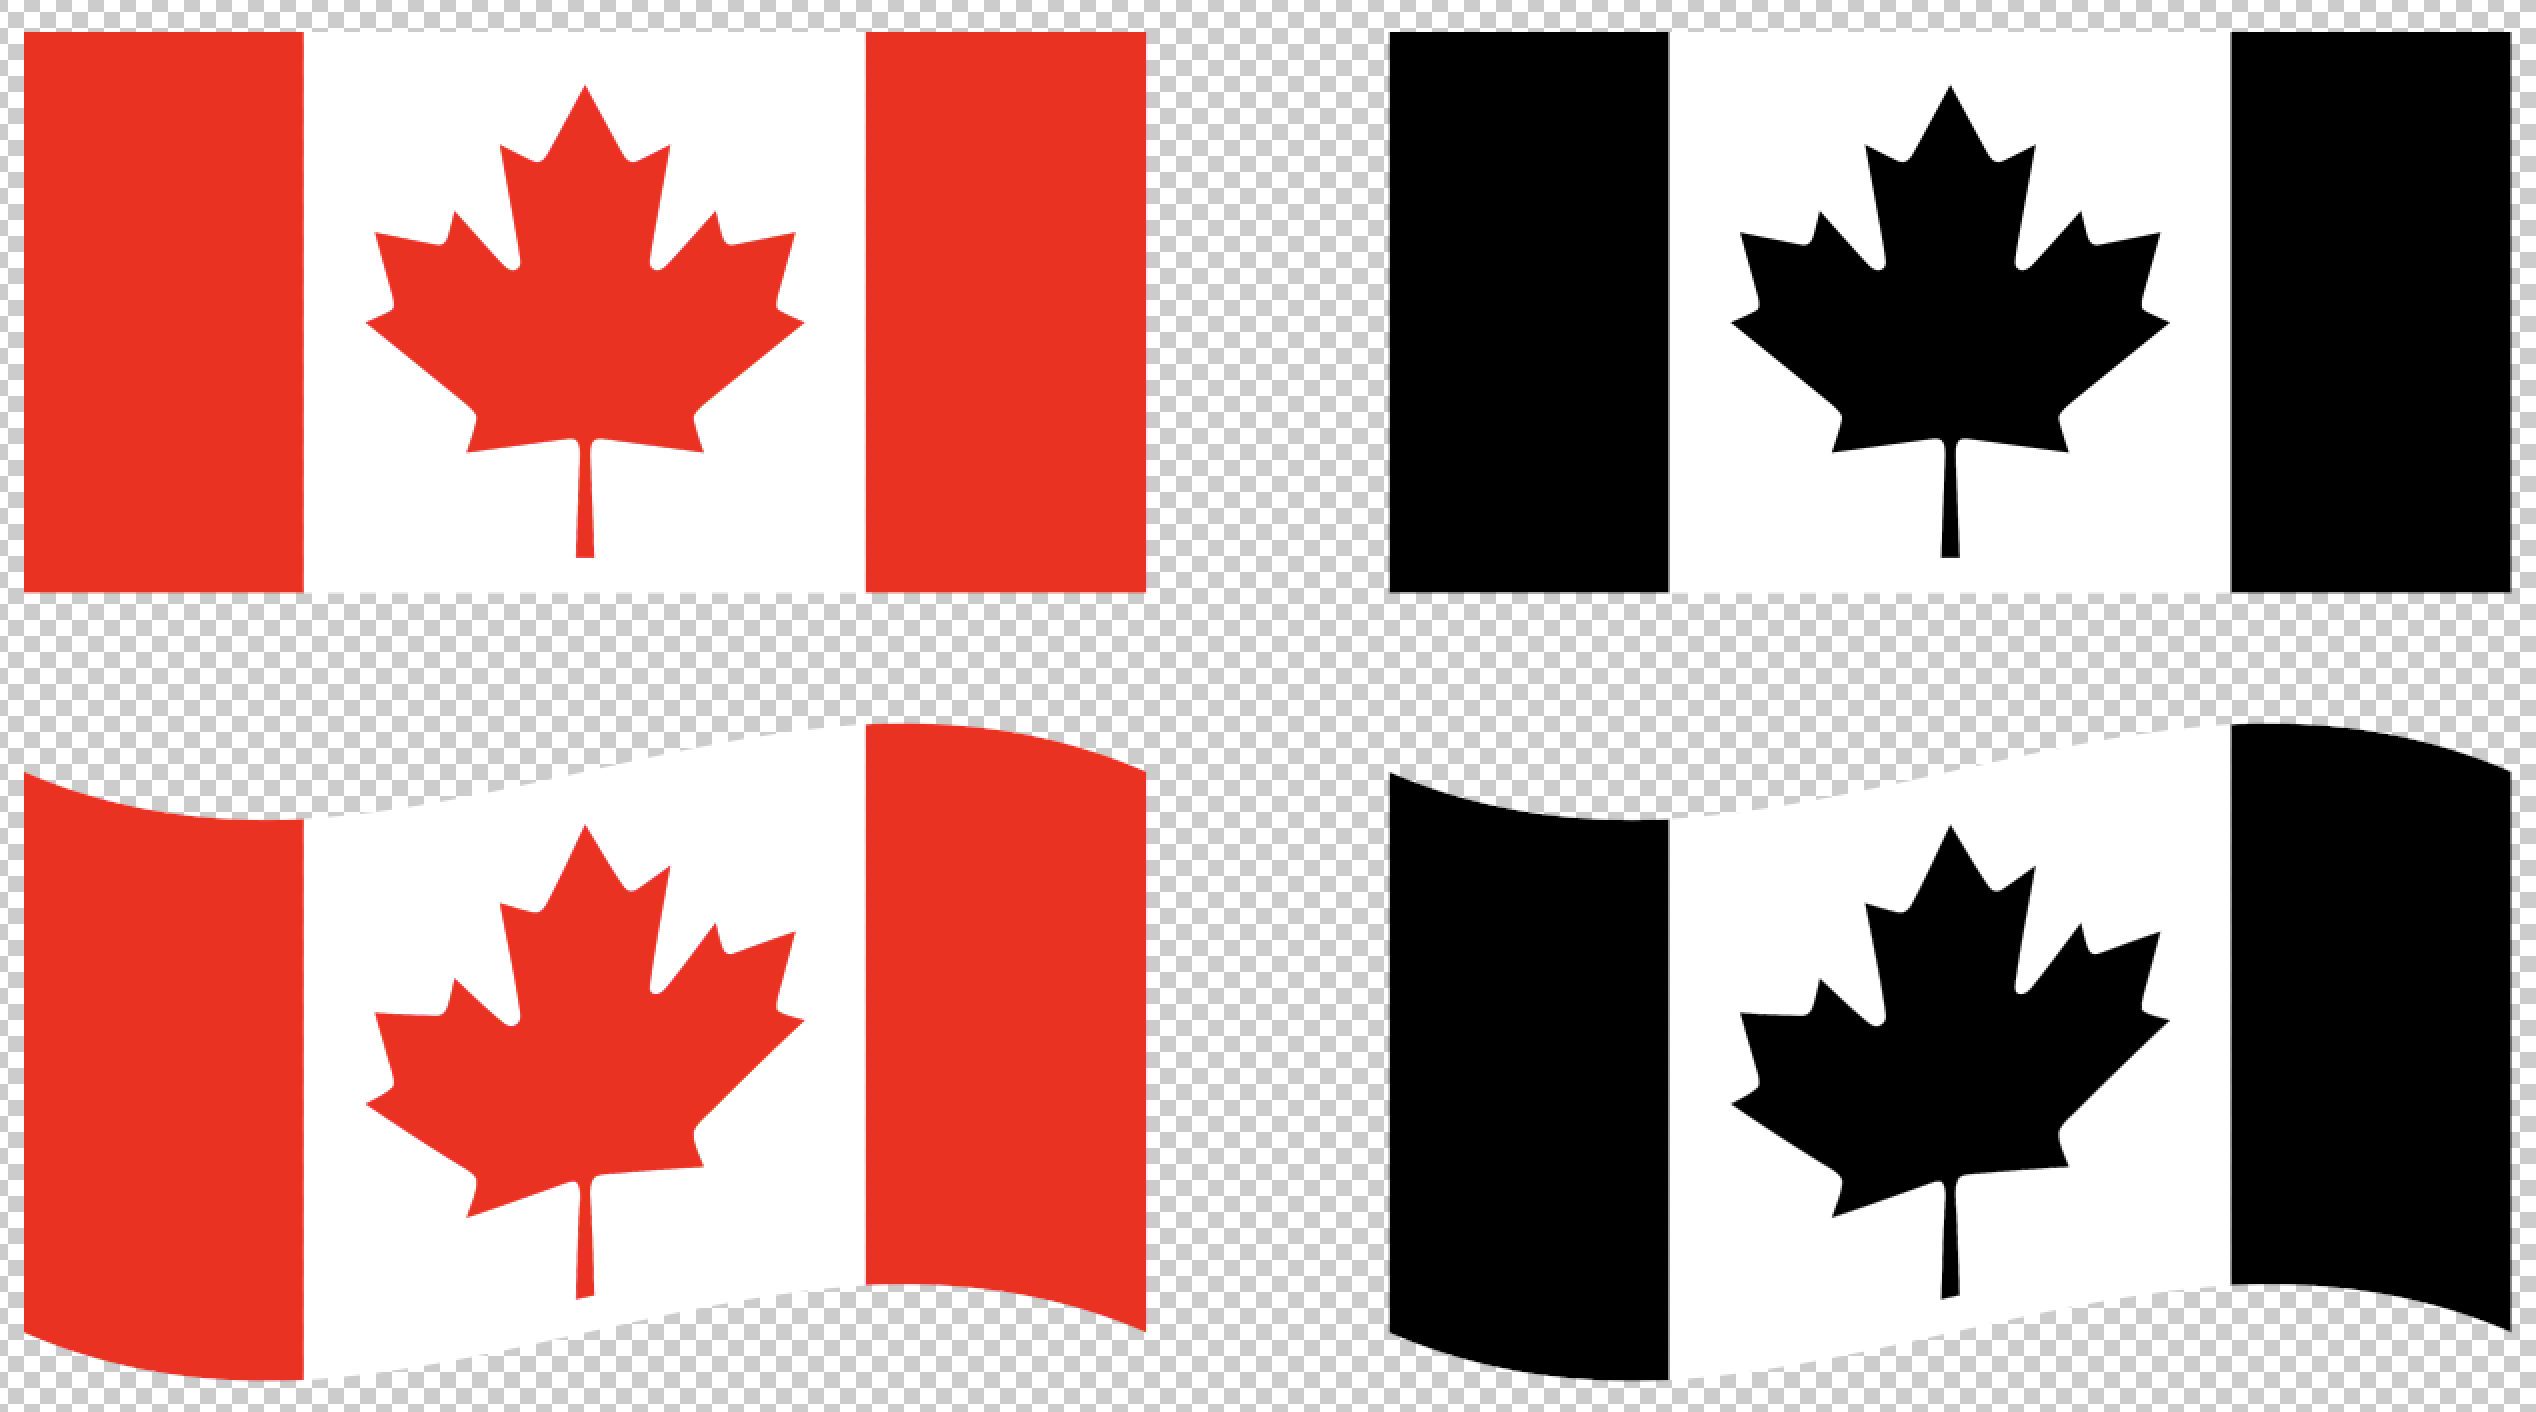 canadian flag silhouette at getdrawings com free for personal use rh getdrawings com canadian flag vectors free canada flag vector file free